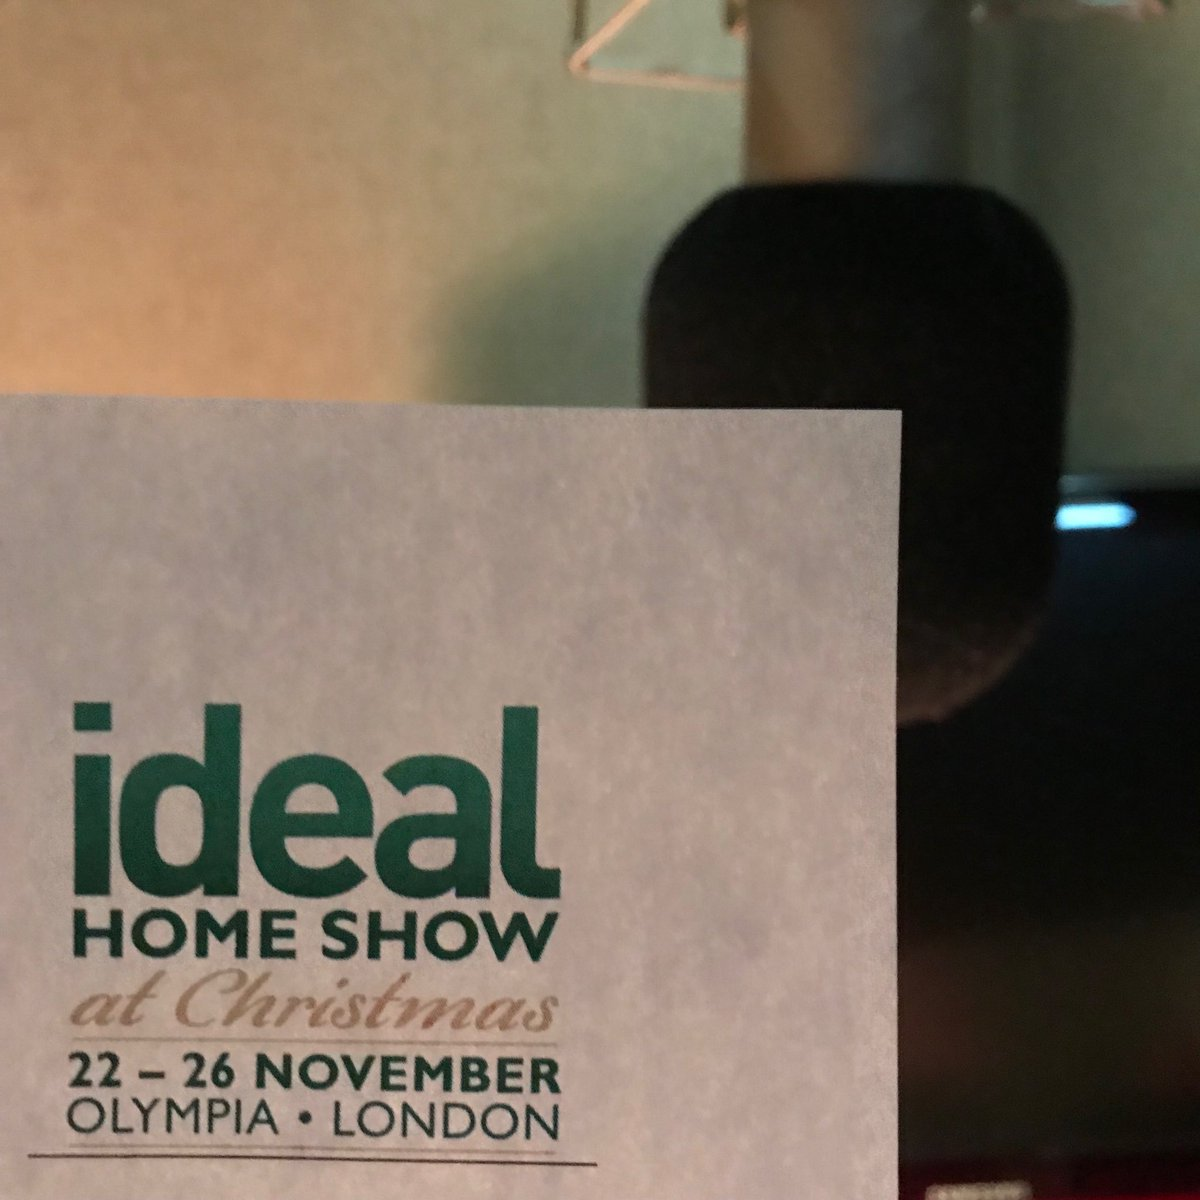 Perfect Ideal Home Design International Inc   Ideal Home Show Ideal Home Show  Twitter